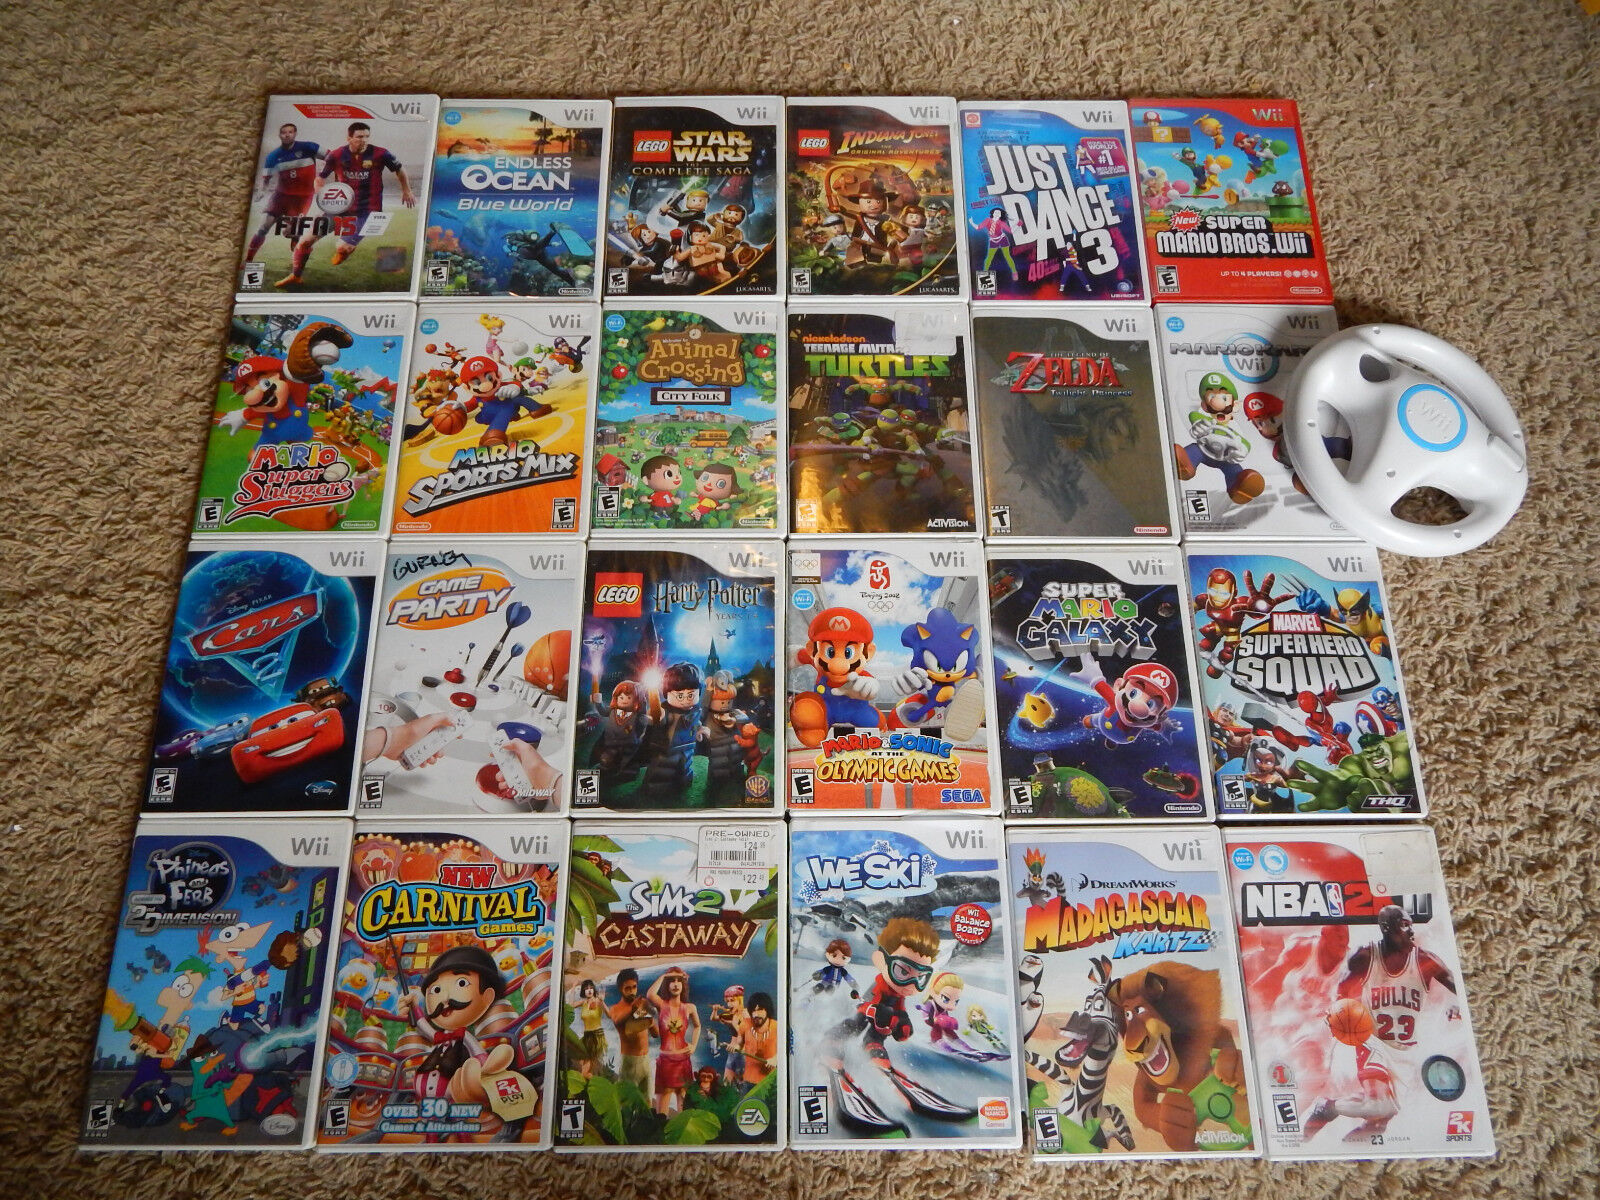 $3.95 - Nintendo Wii Games! You Choose from Large Selection! Many Titles! Mario, Zelda